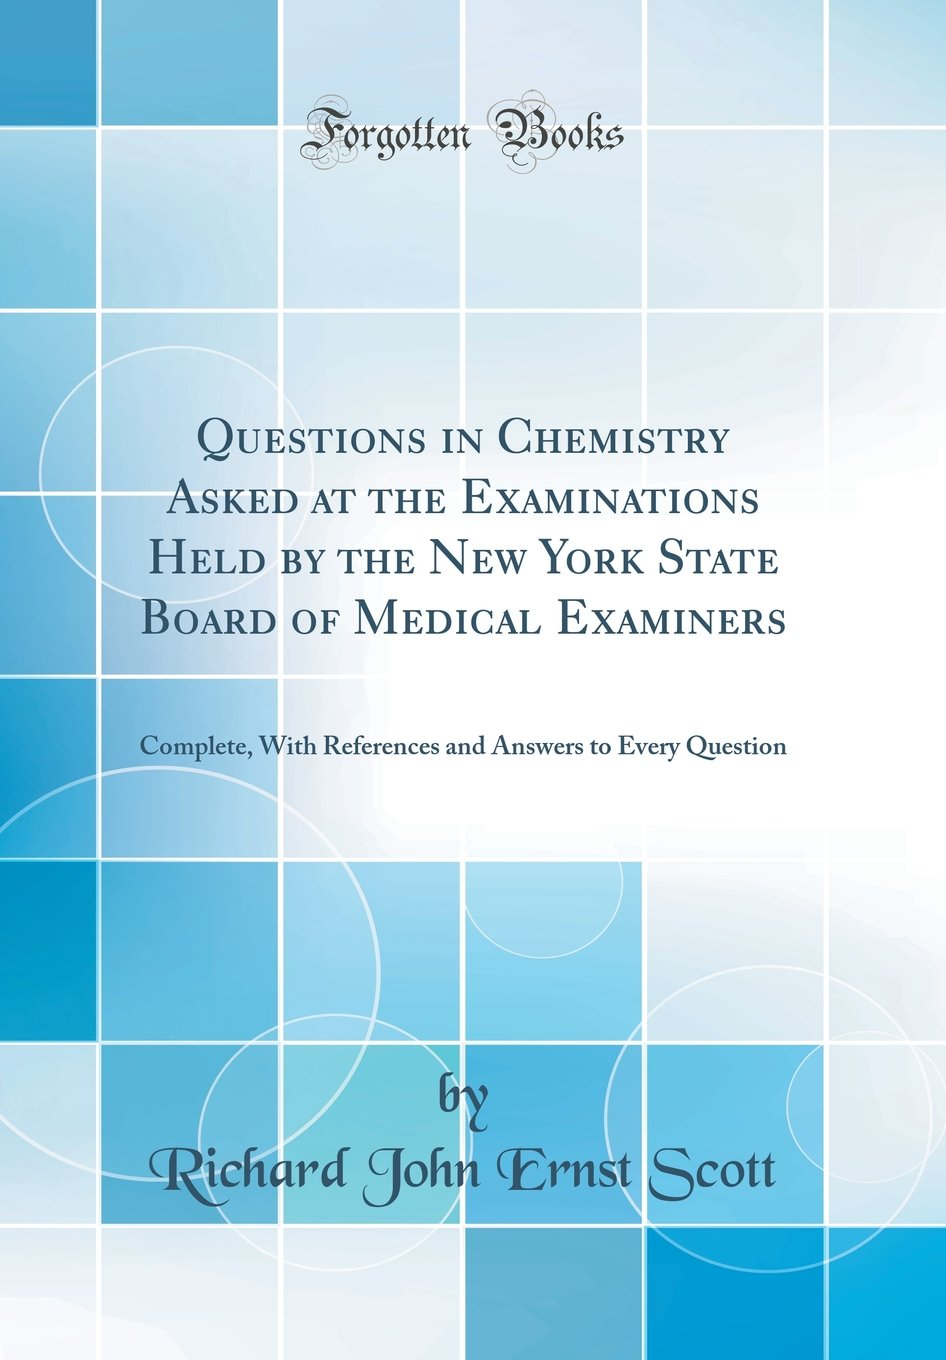 Download Questions in Chemistry Asked at the Examinations Held by the New York State Board of Medical Examiners: Complete, with References and Answers to Every Question (Classic Reprint) ebook